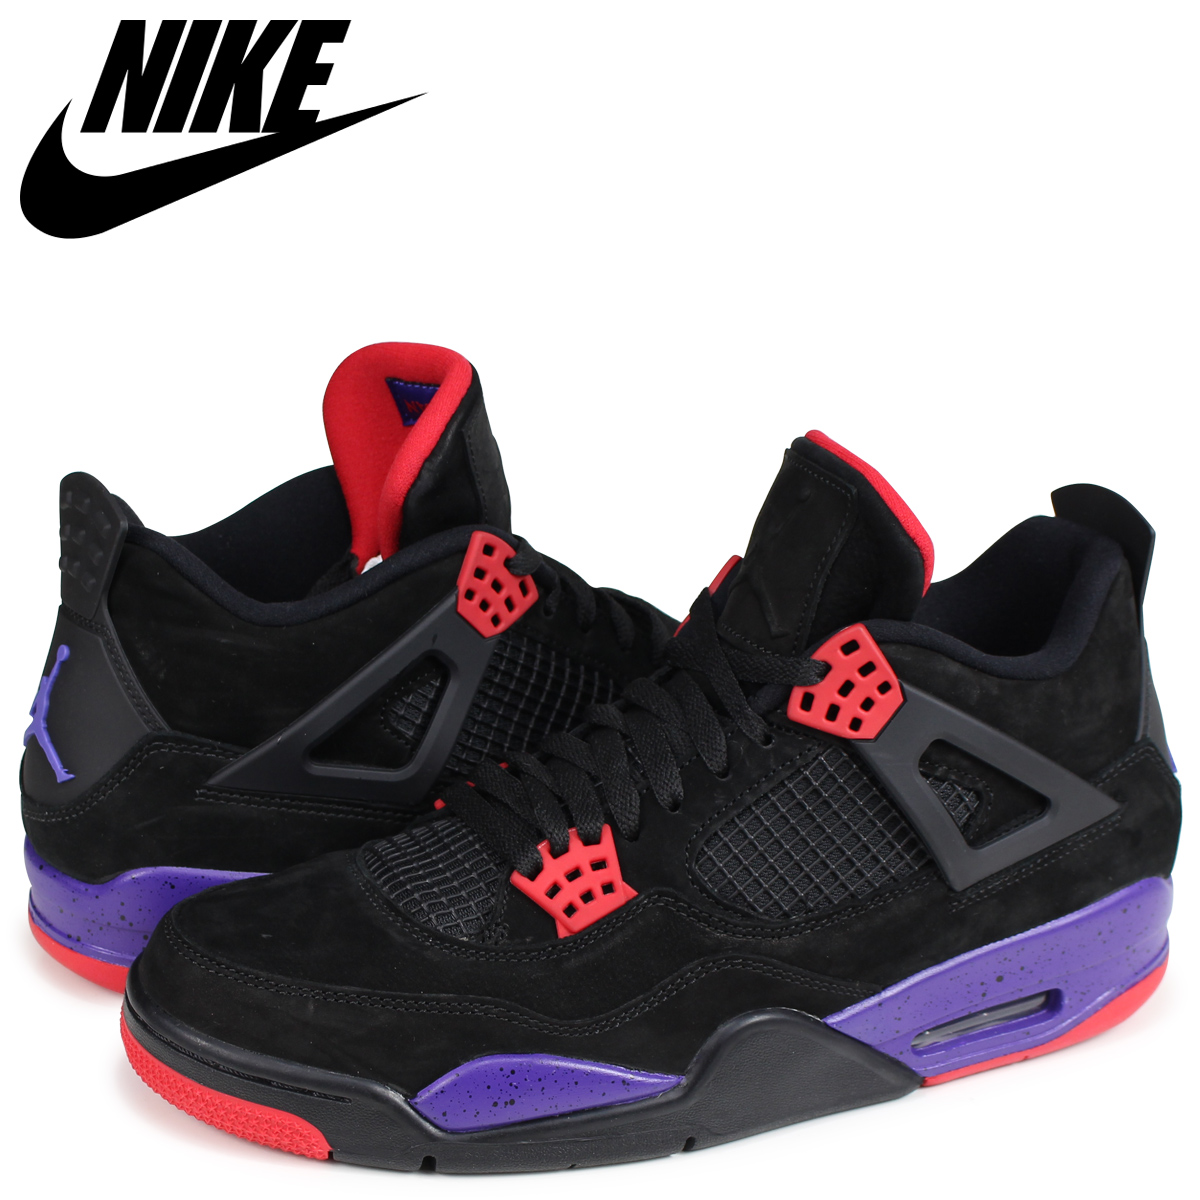 6283a231bb7555 SneaK Online Shop  Nike NIKE Air Jordan 4 nostalgic sneakers men AIR ...